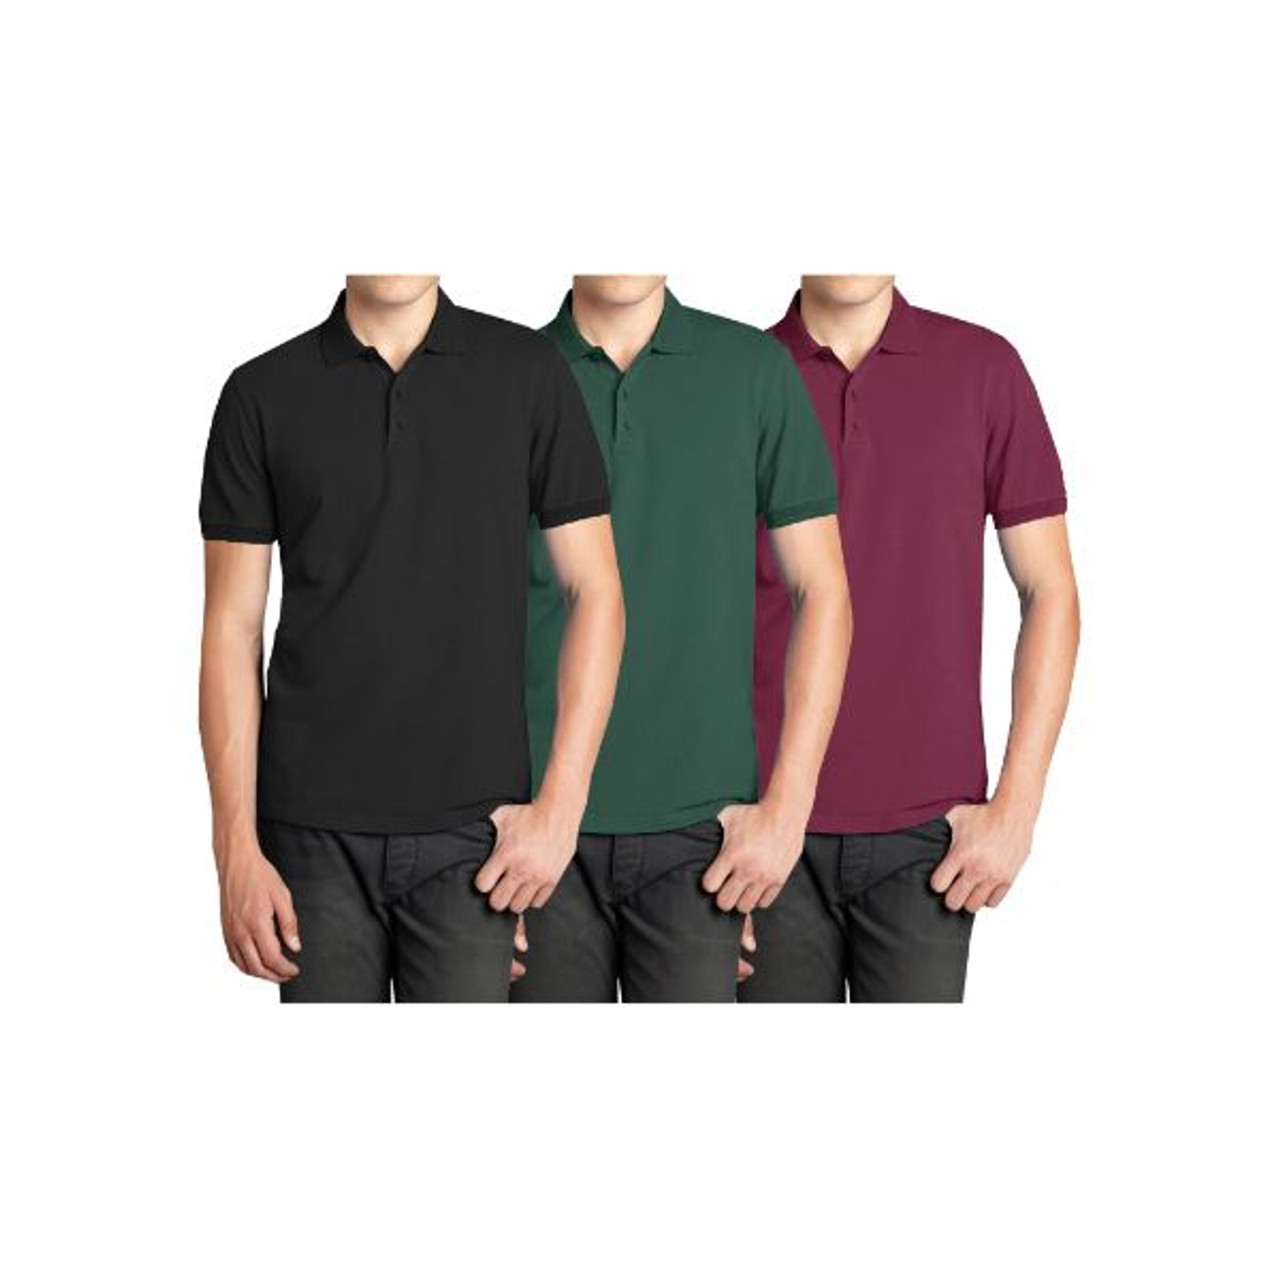 Men's Short Sleeve Polo Shirts - 3 Pack